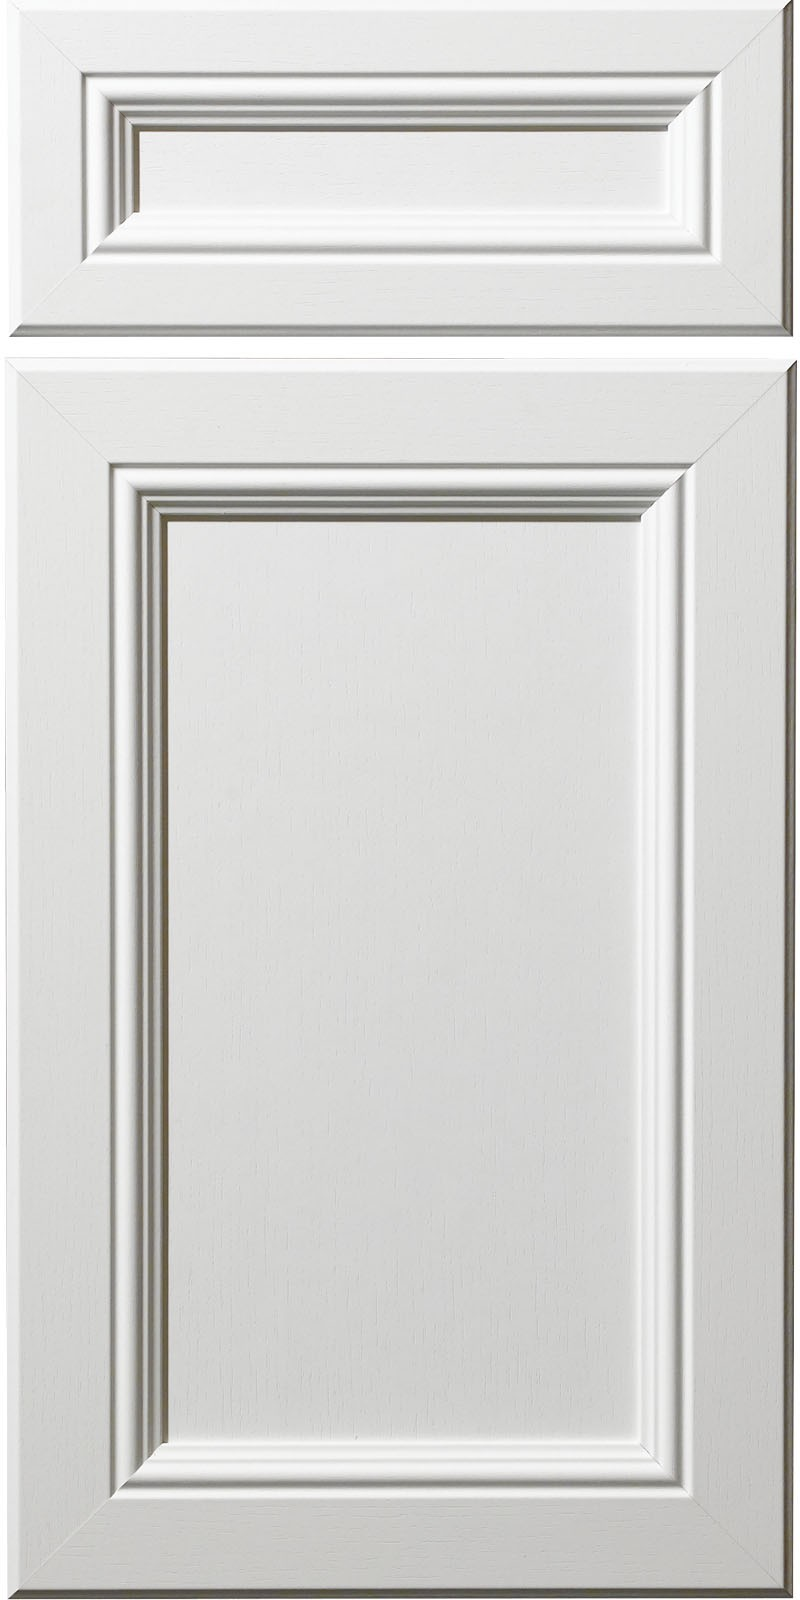 Recessed Panel Doors Kline Cabinetmakers